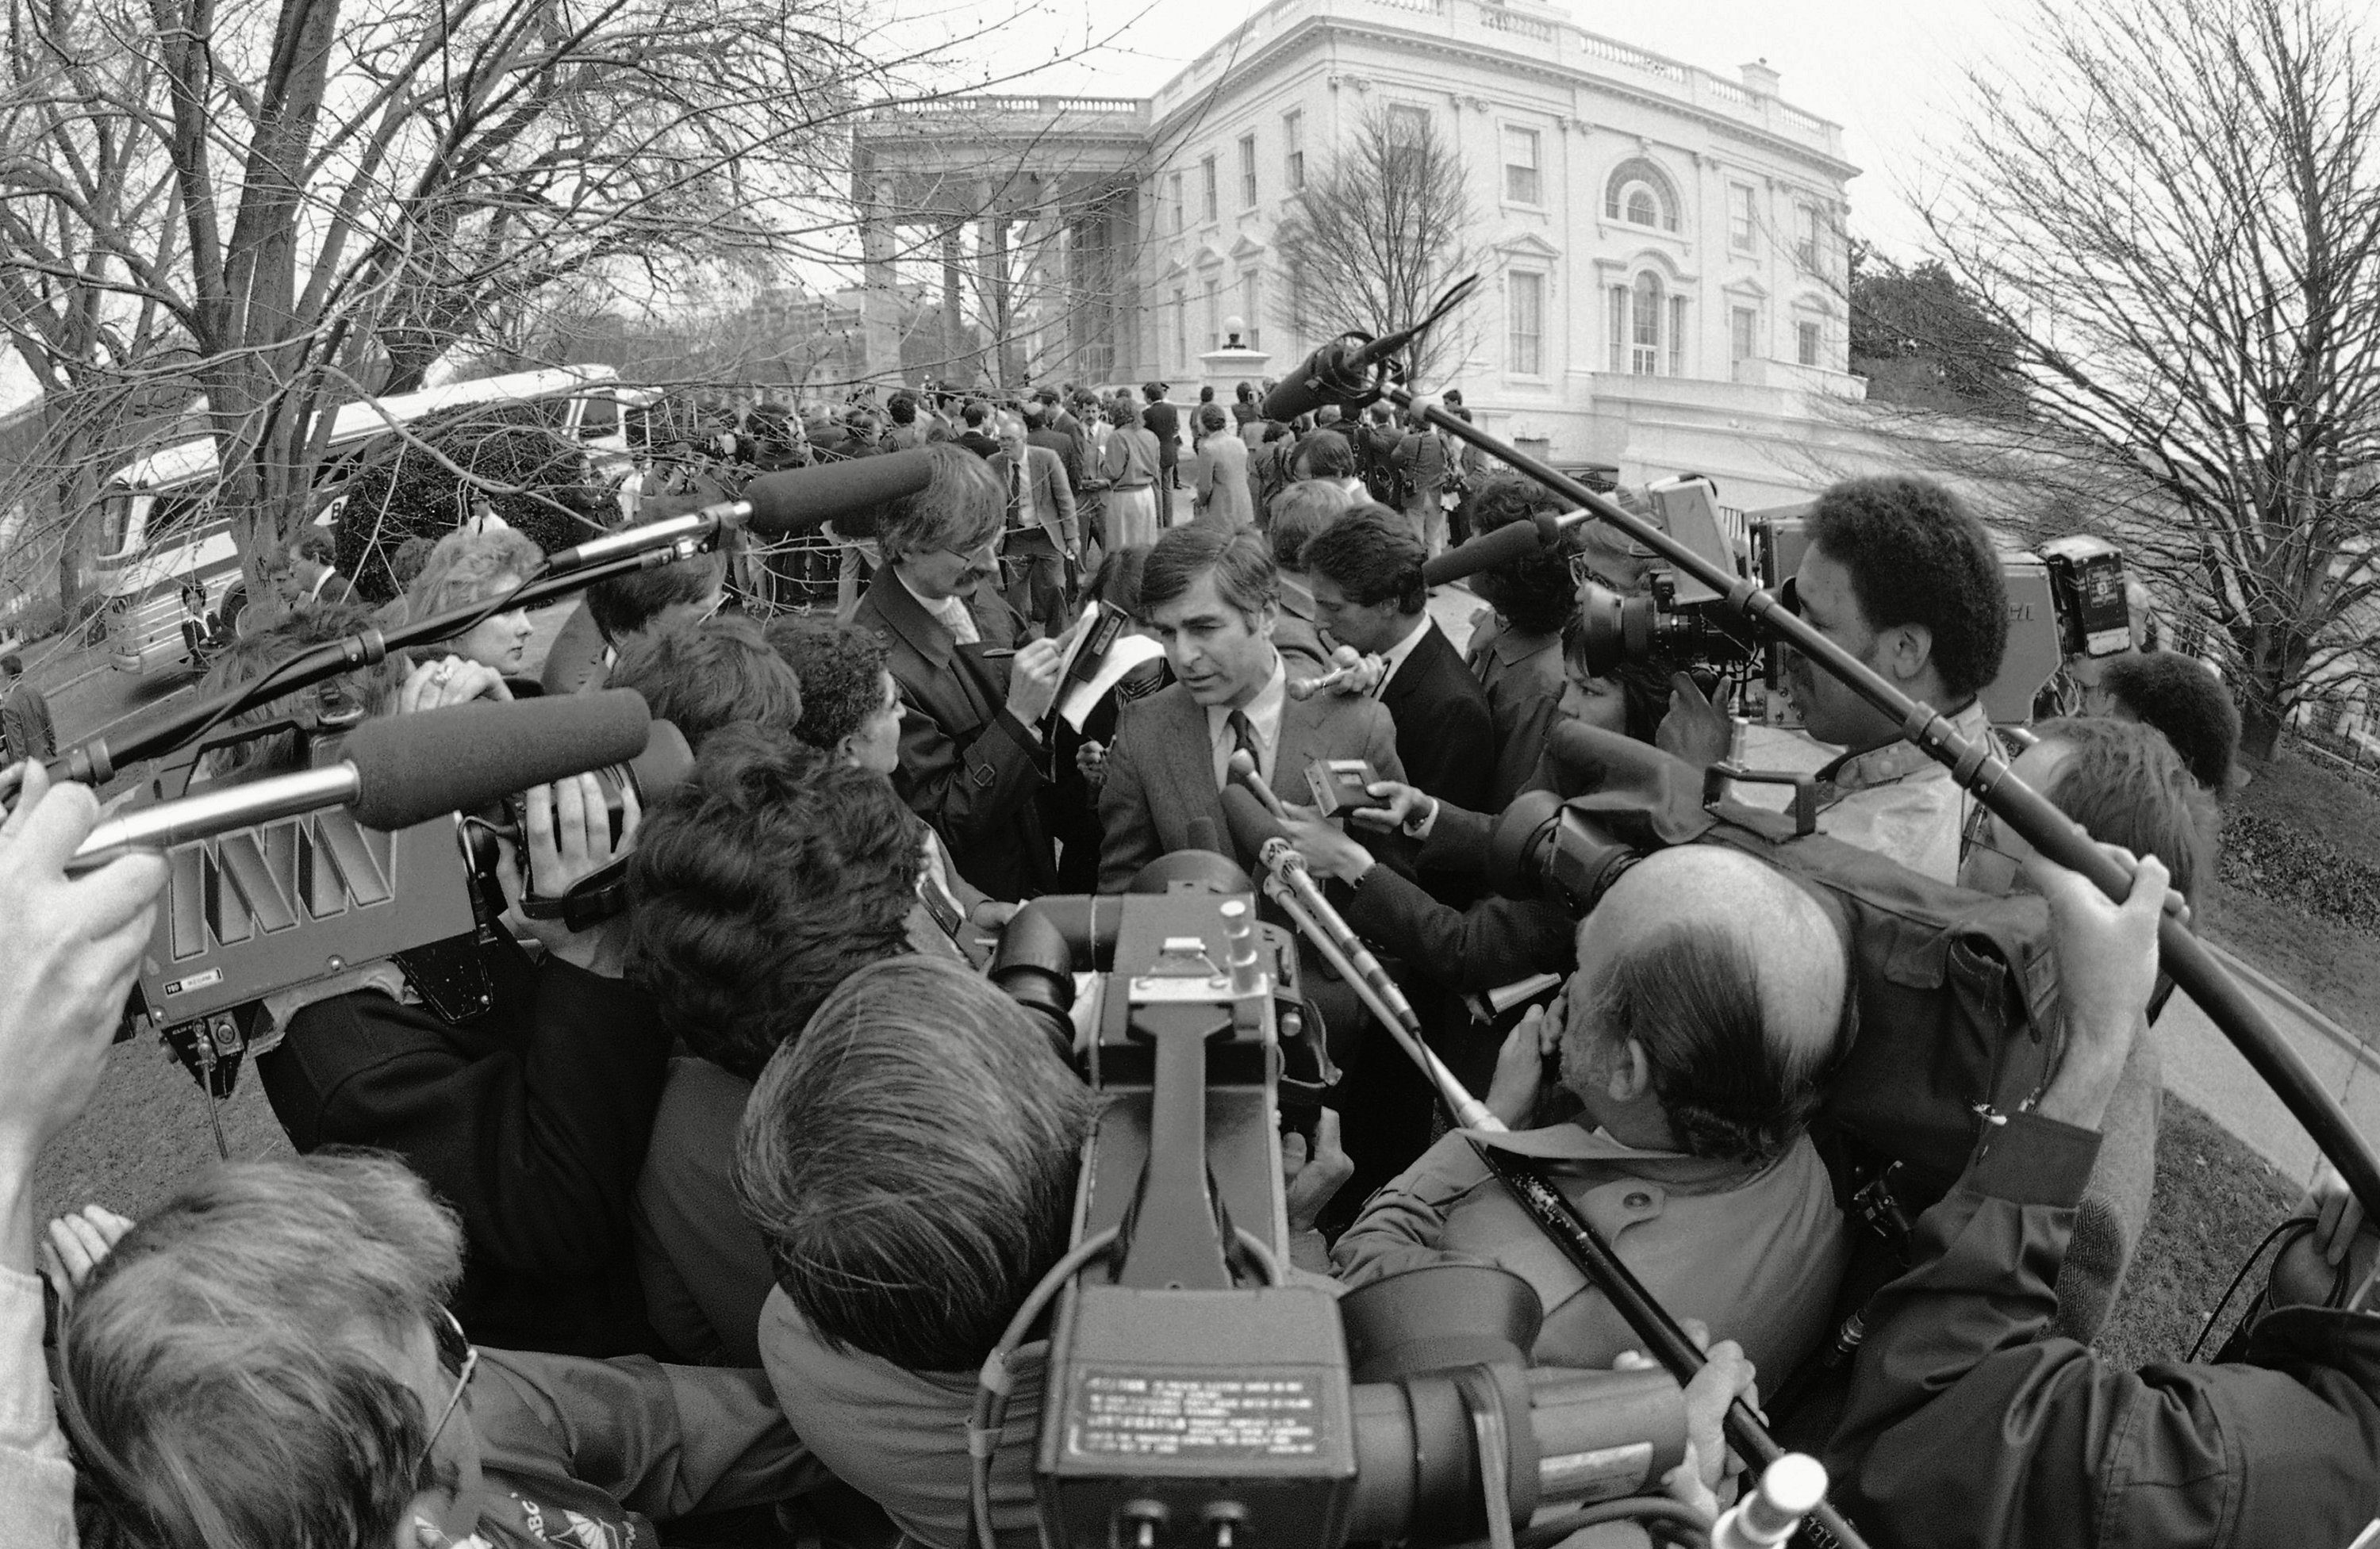 Mandatory Credit: Photo by Scott Applewhite/AP/Shutterstock (6004396a) Michael Dukakis Gov. Michael Dukakis of Mass., who had just left the White House after hearing President Reagan speaks to members of the National Governor?s Association, is surrounded by members of the news media, in Washington, who were seeking details of the speech by the President Gov. Michael Dukakis and News Media, Washington, USA